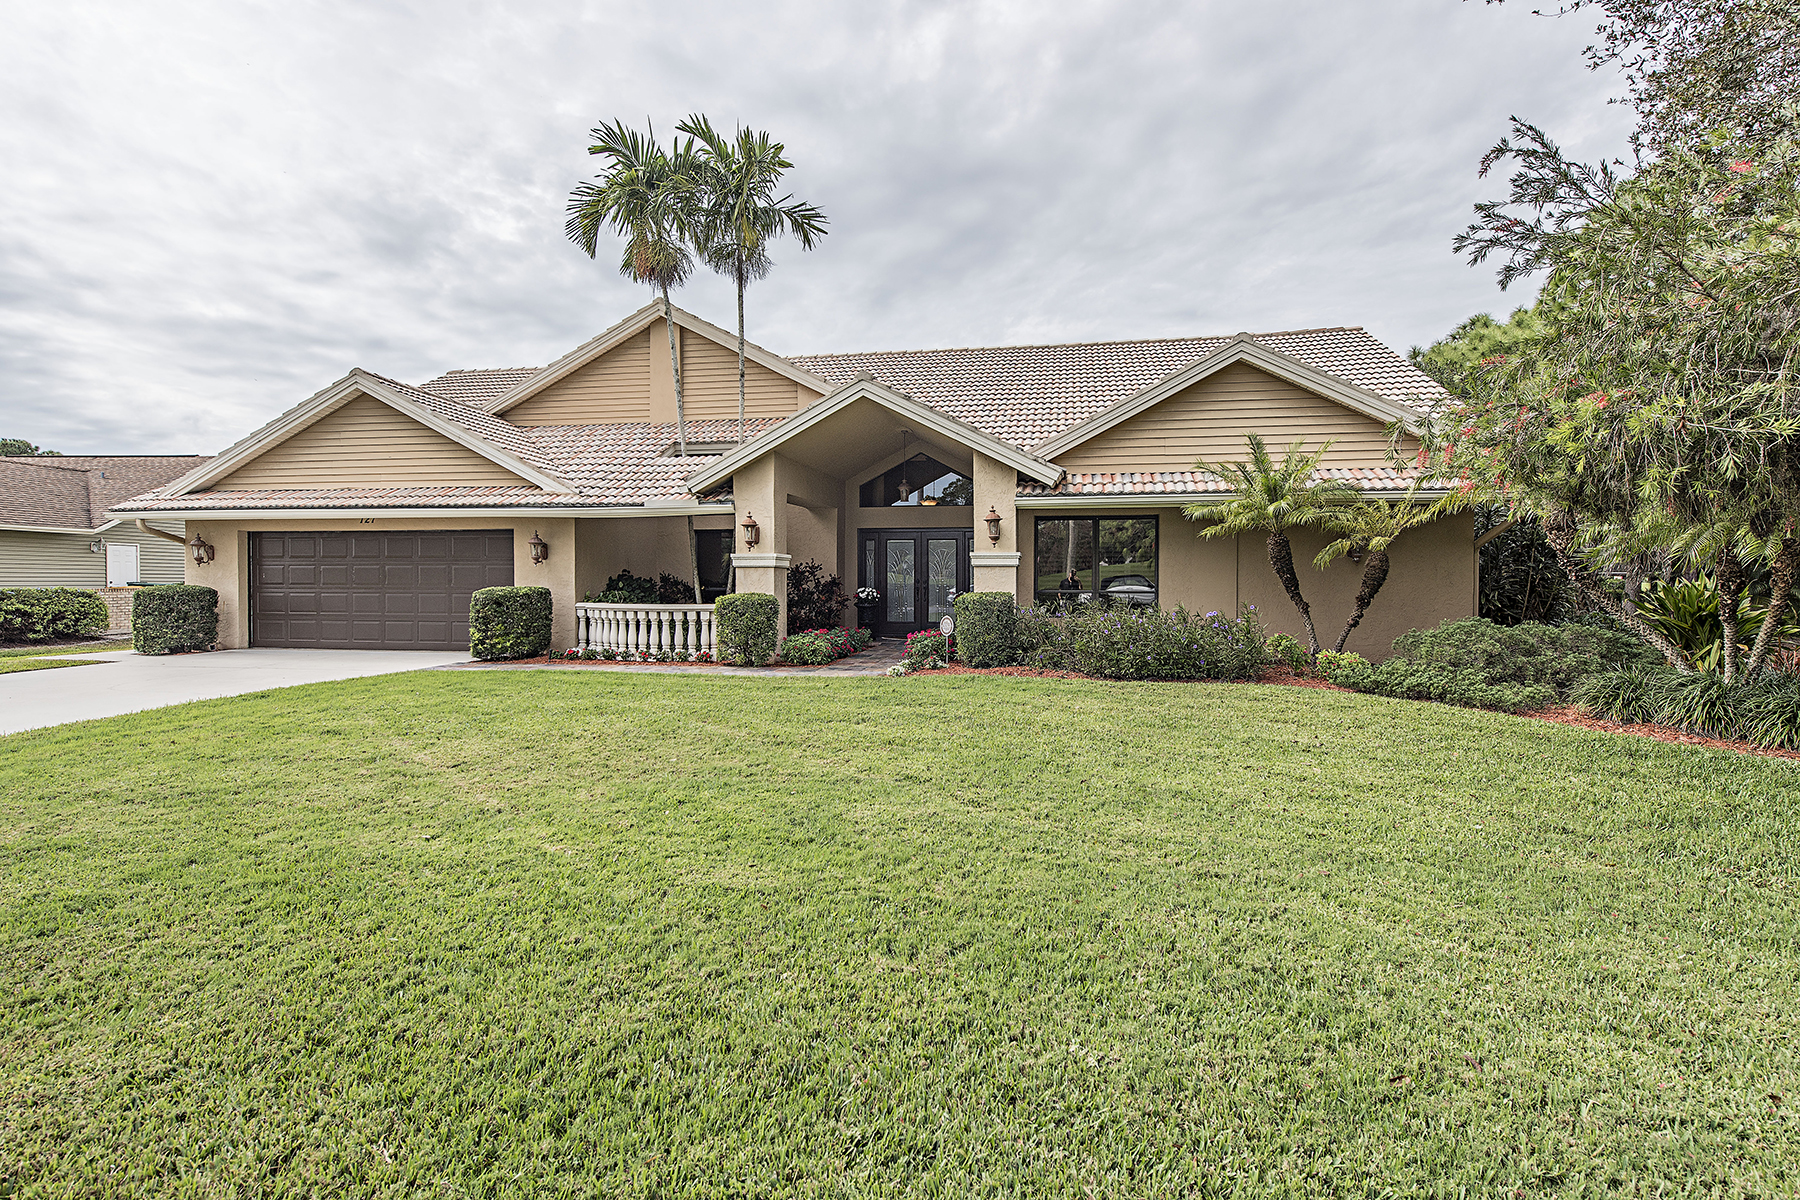 Single Family Home for Sale at LELY COUNTRY CLUB - TANGLEWOOD 127 Muirfield Cir Naples, Florida, 34113 United States